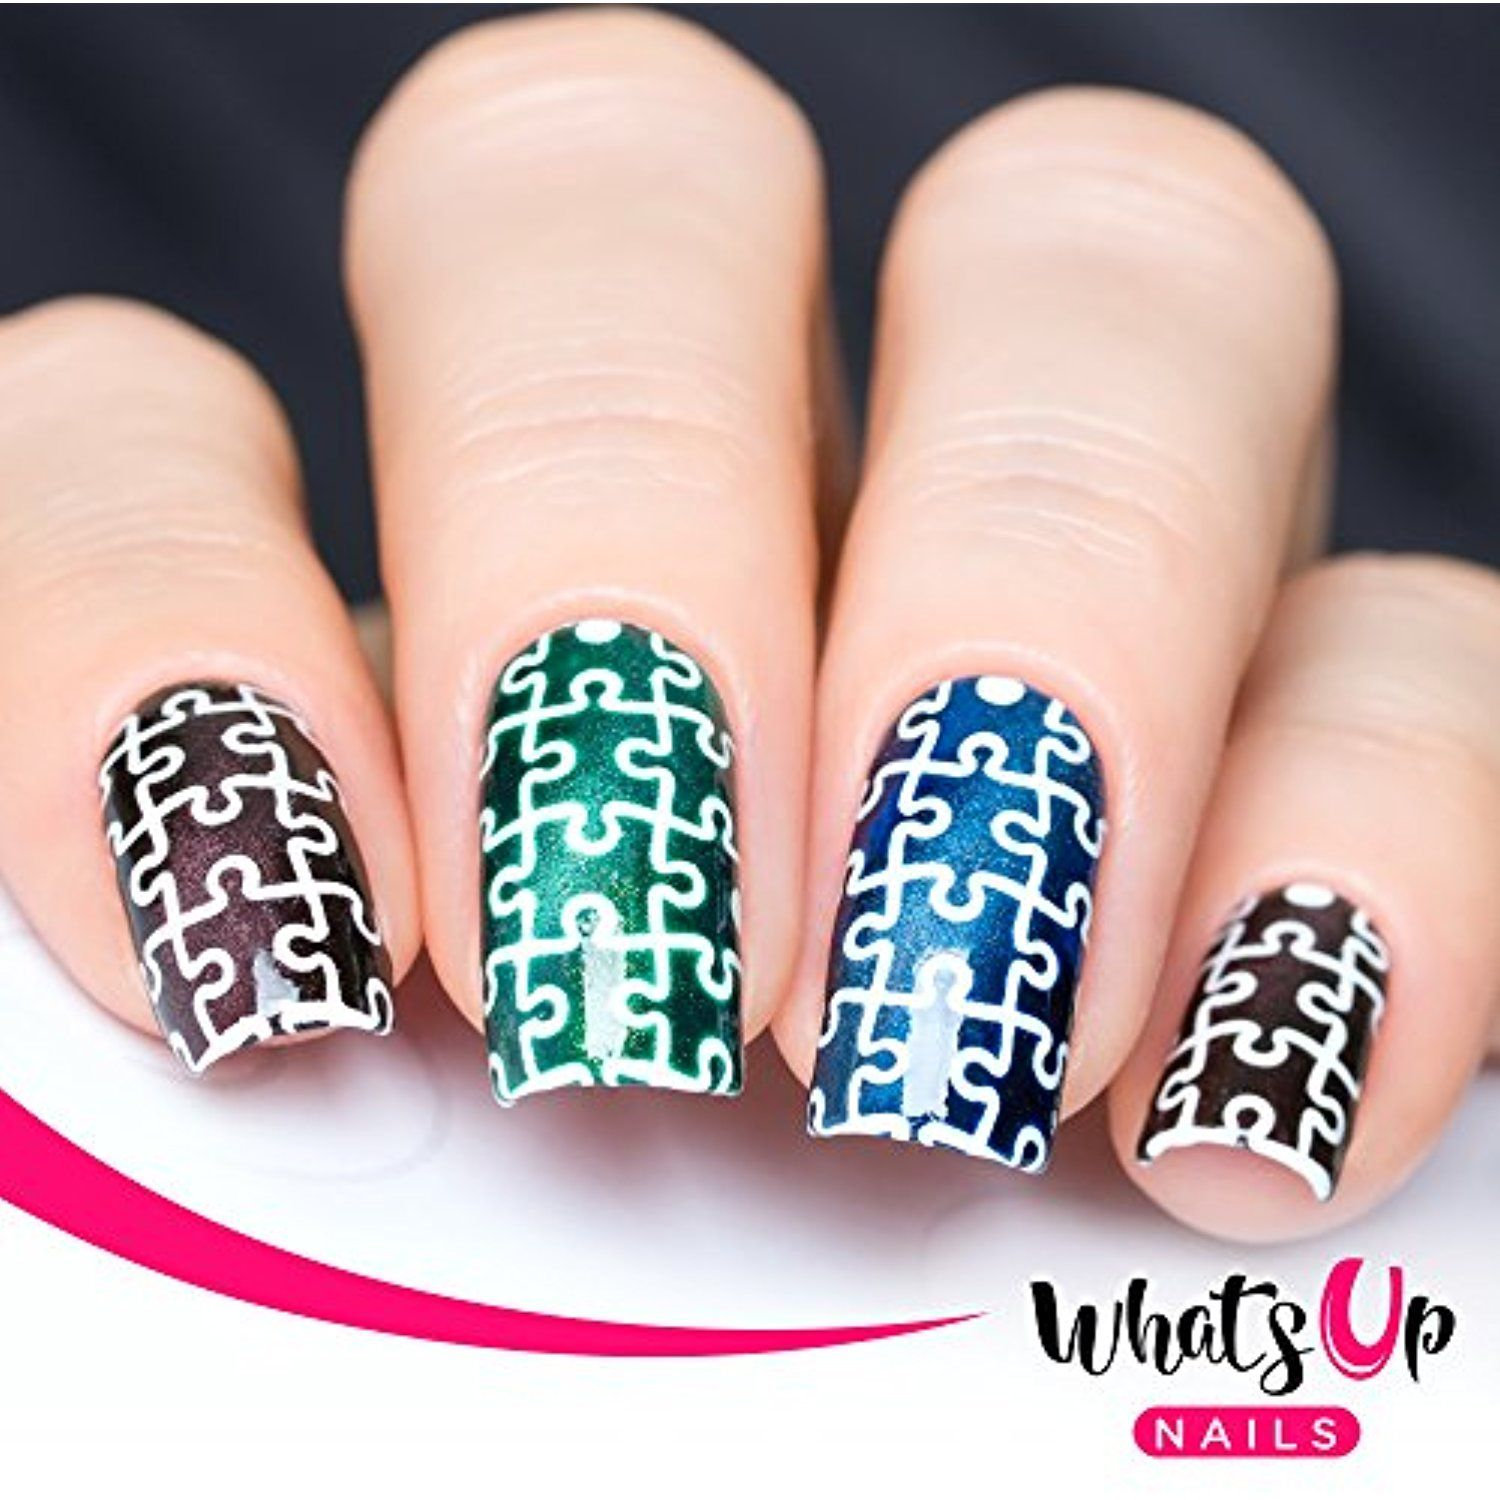 Whats Up Nails Puzzles Nail Stencils Stickers Vinyls For Nail Art